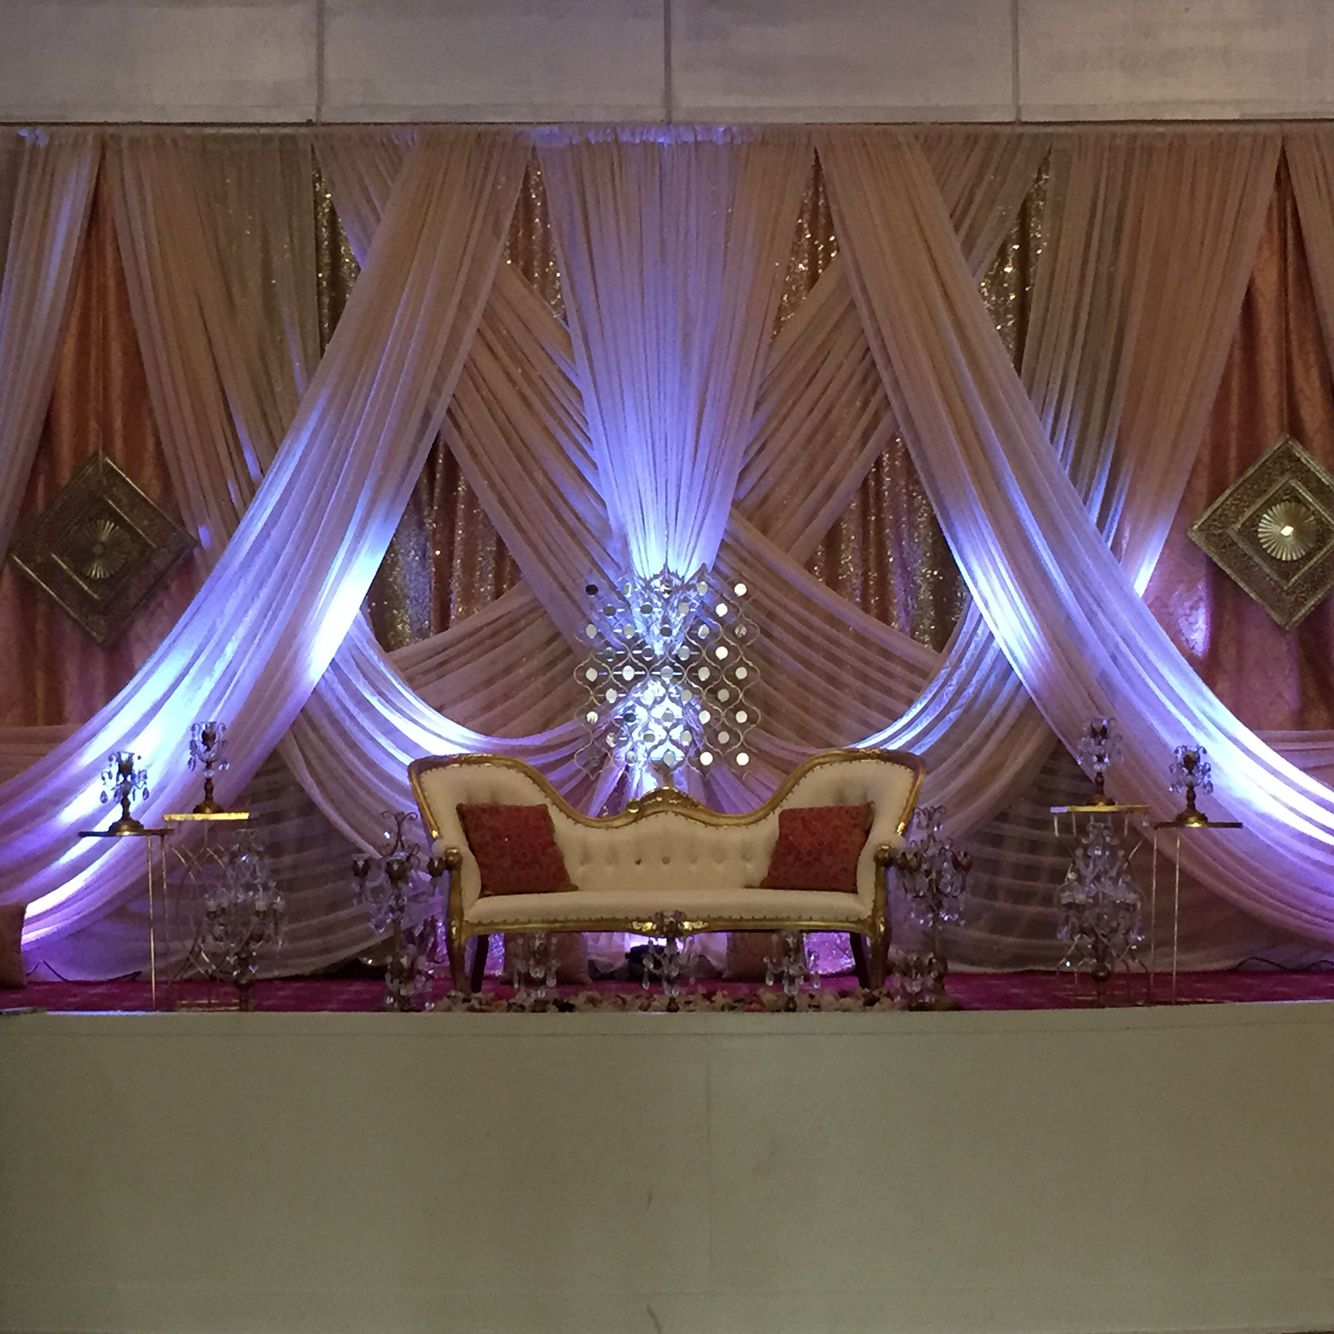 Reception Decor An R R Original For Indian Wedding Decorations In The Bay Area Californ Luxury Wedding Decor Wedding Stage Design Indian Wedding Decorations